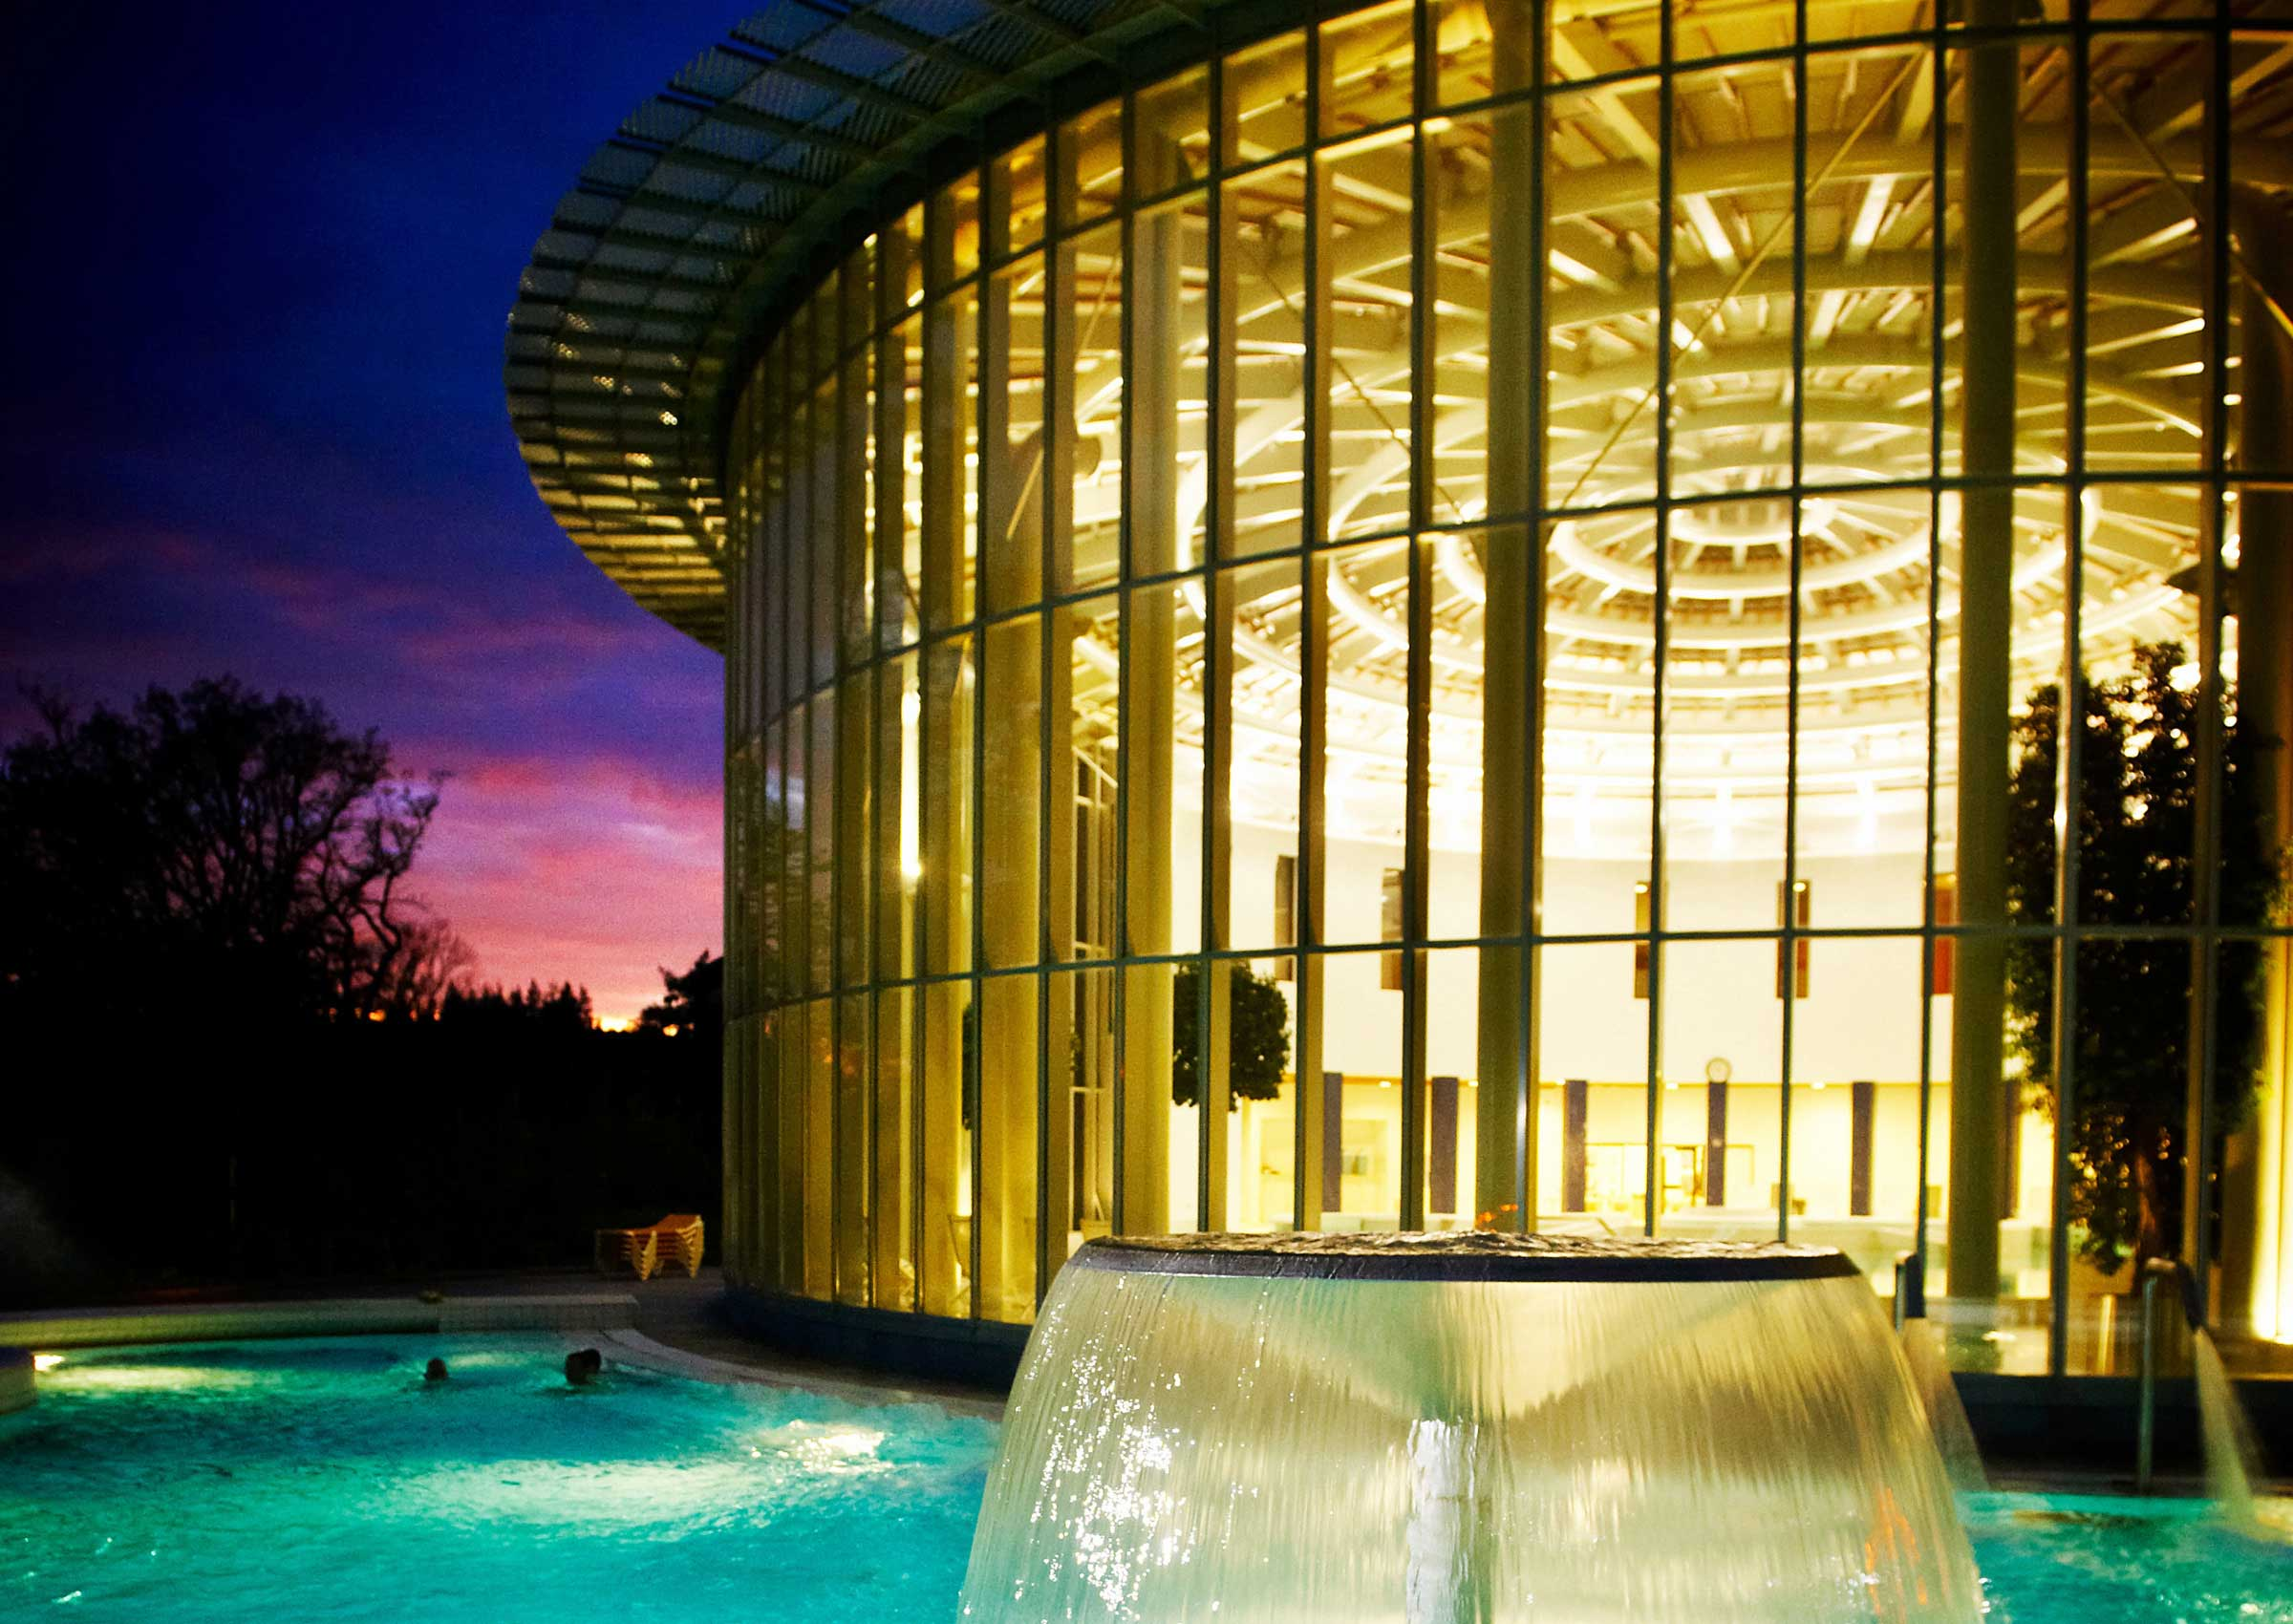 Les thermes de spa sothys for Thermes spa